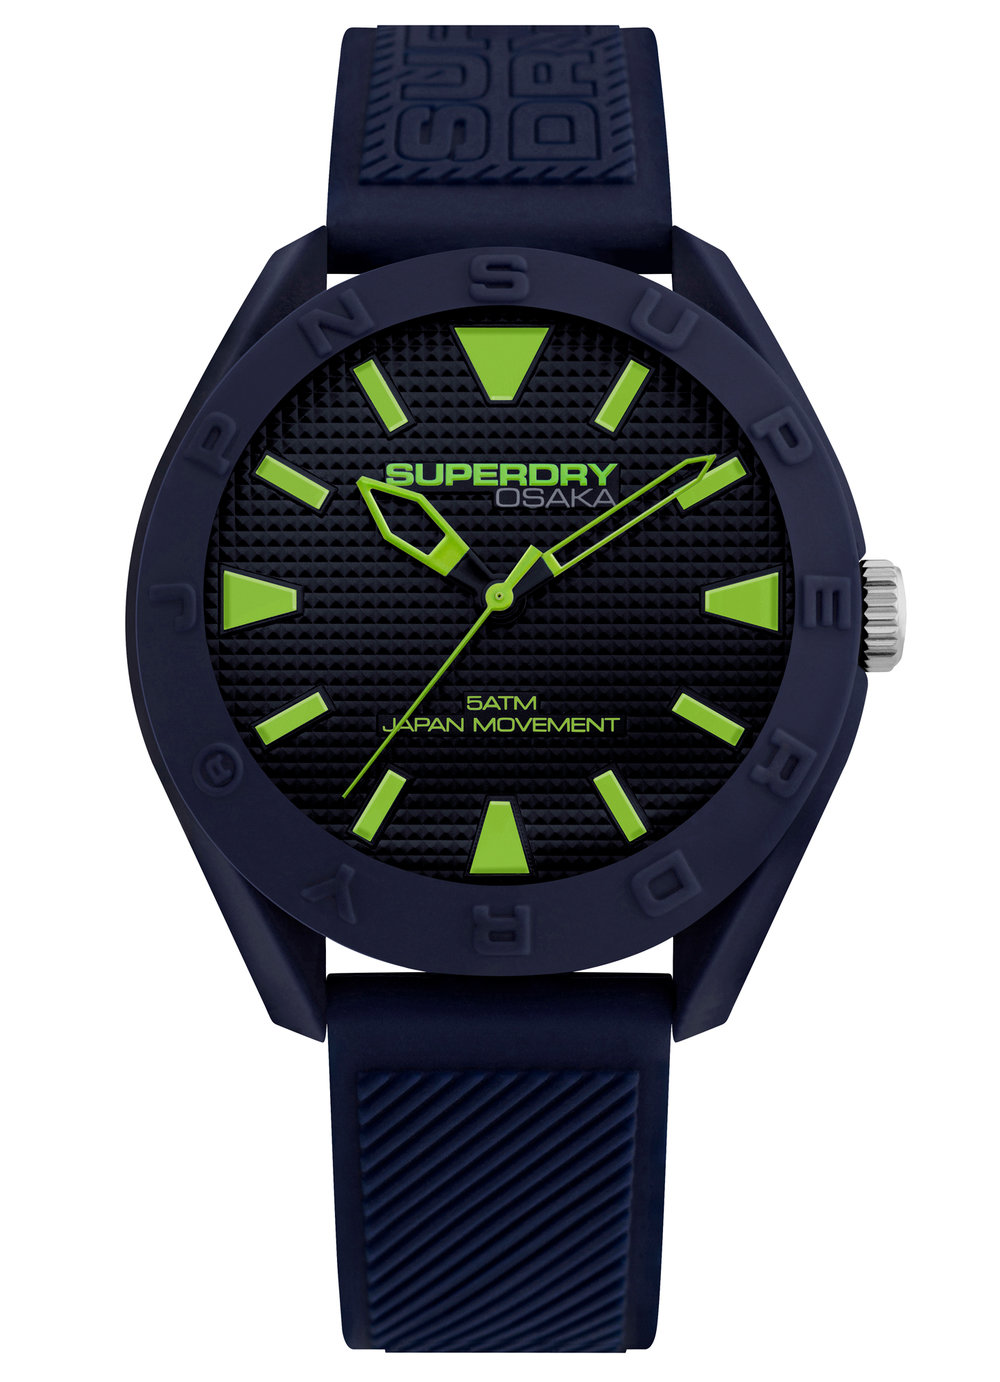 superdry_watches_SDSYG243U.jpg